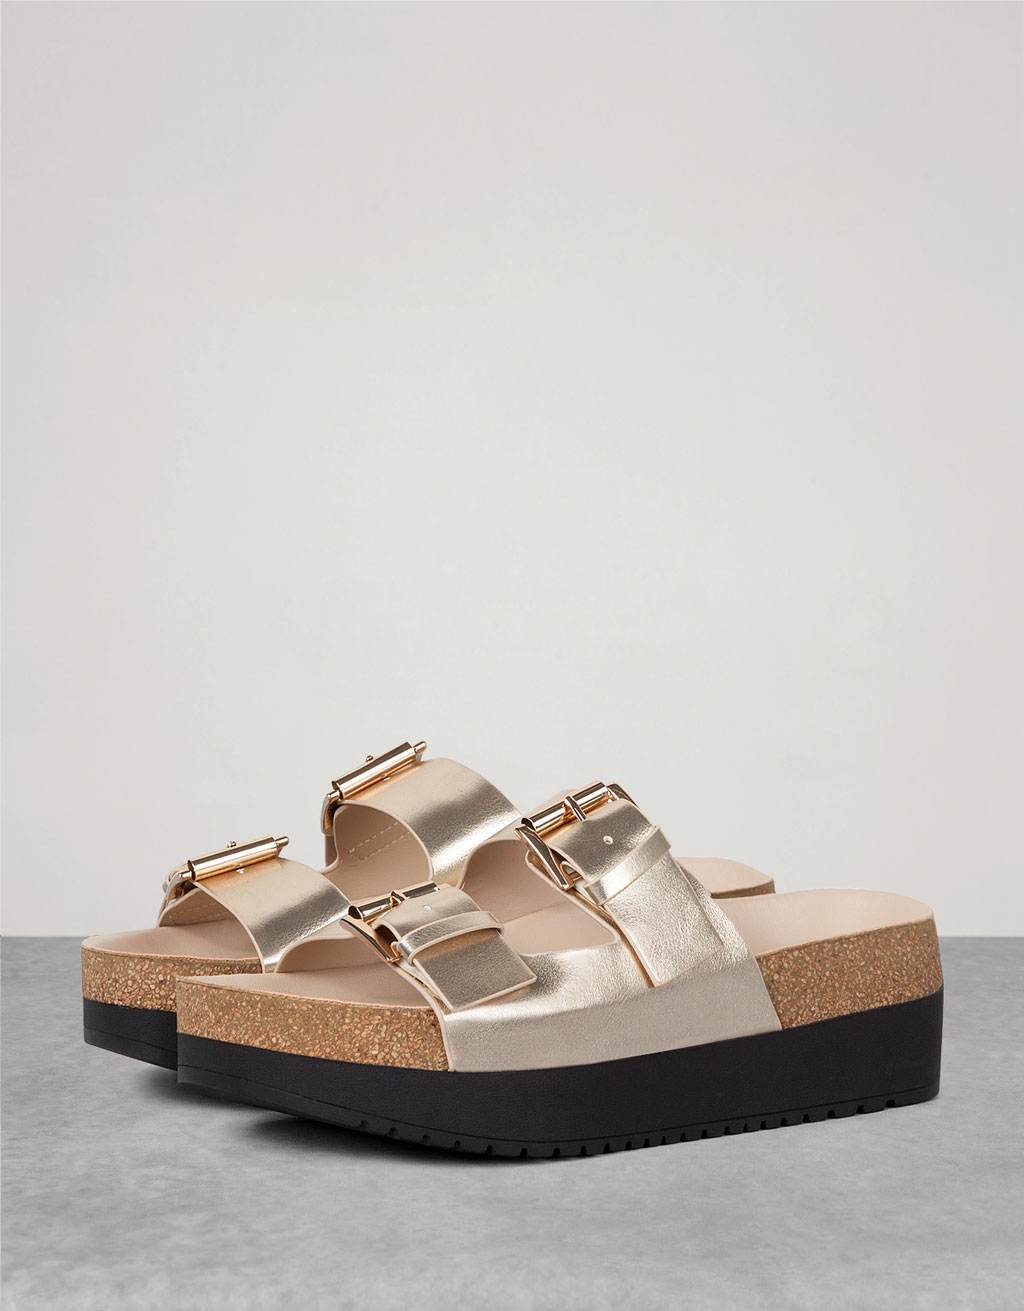 Metallic bio platforms